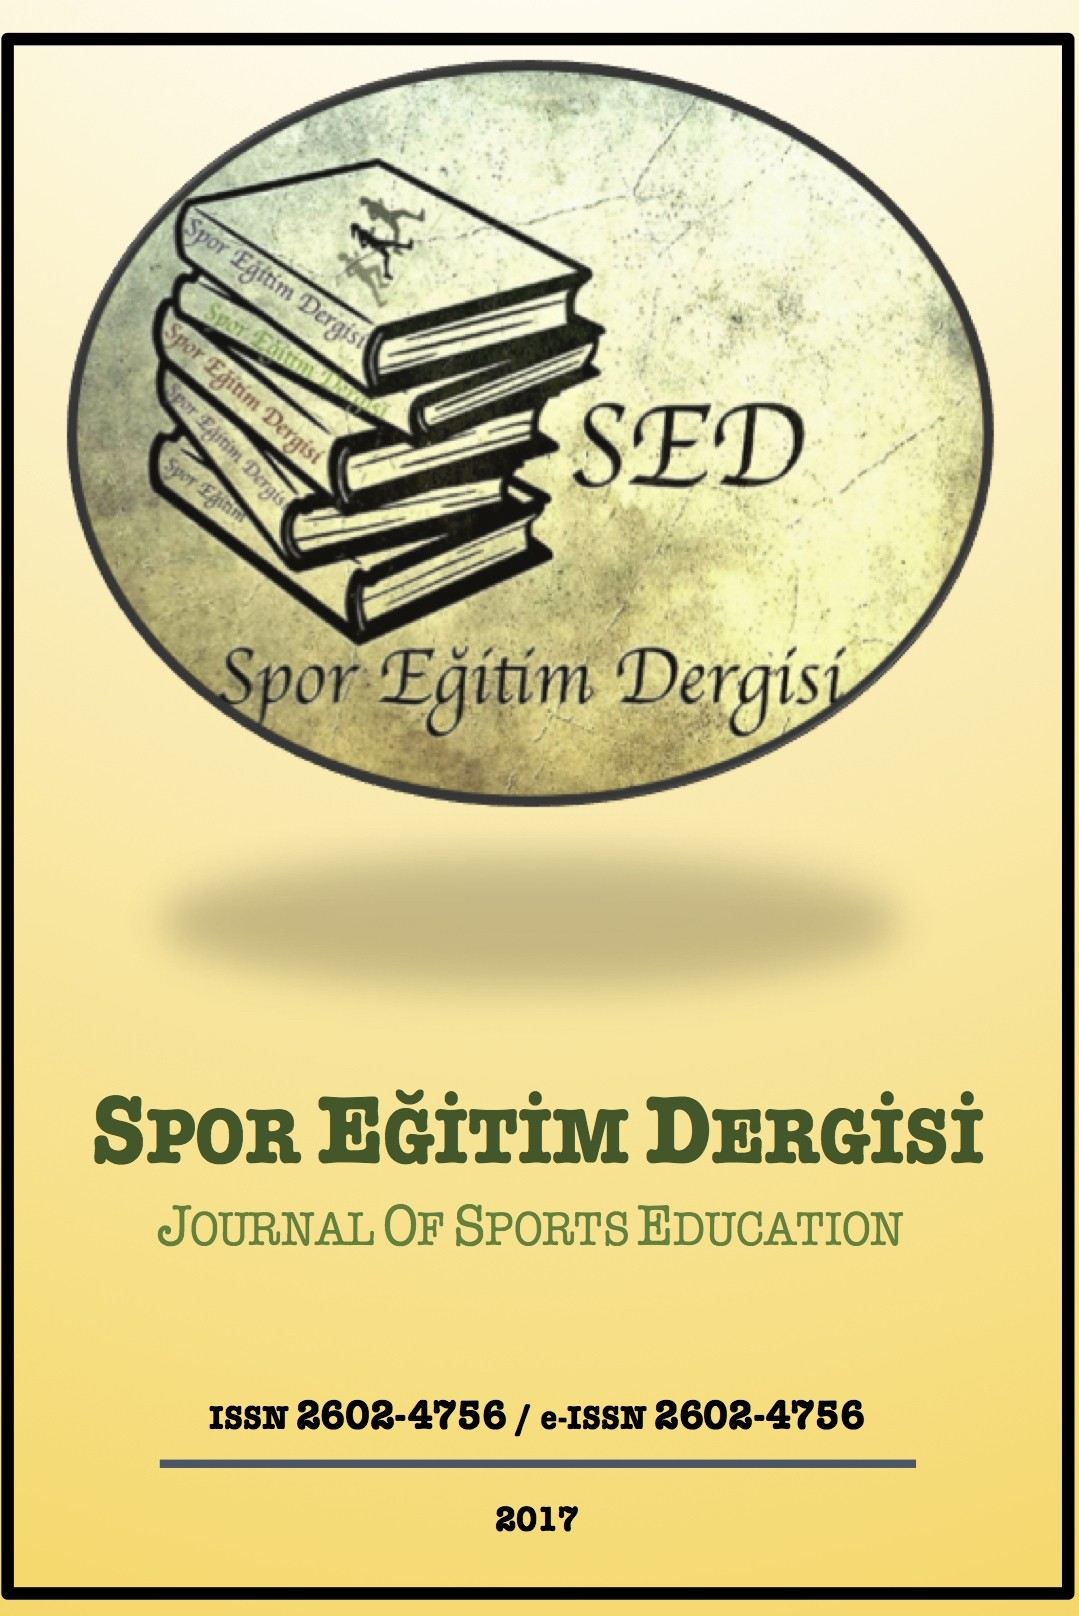 Journal of Sports Education